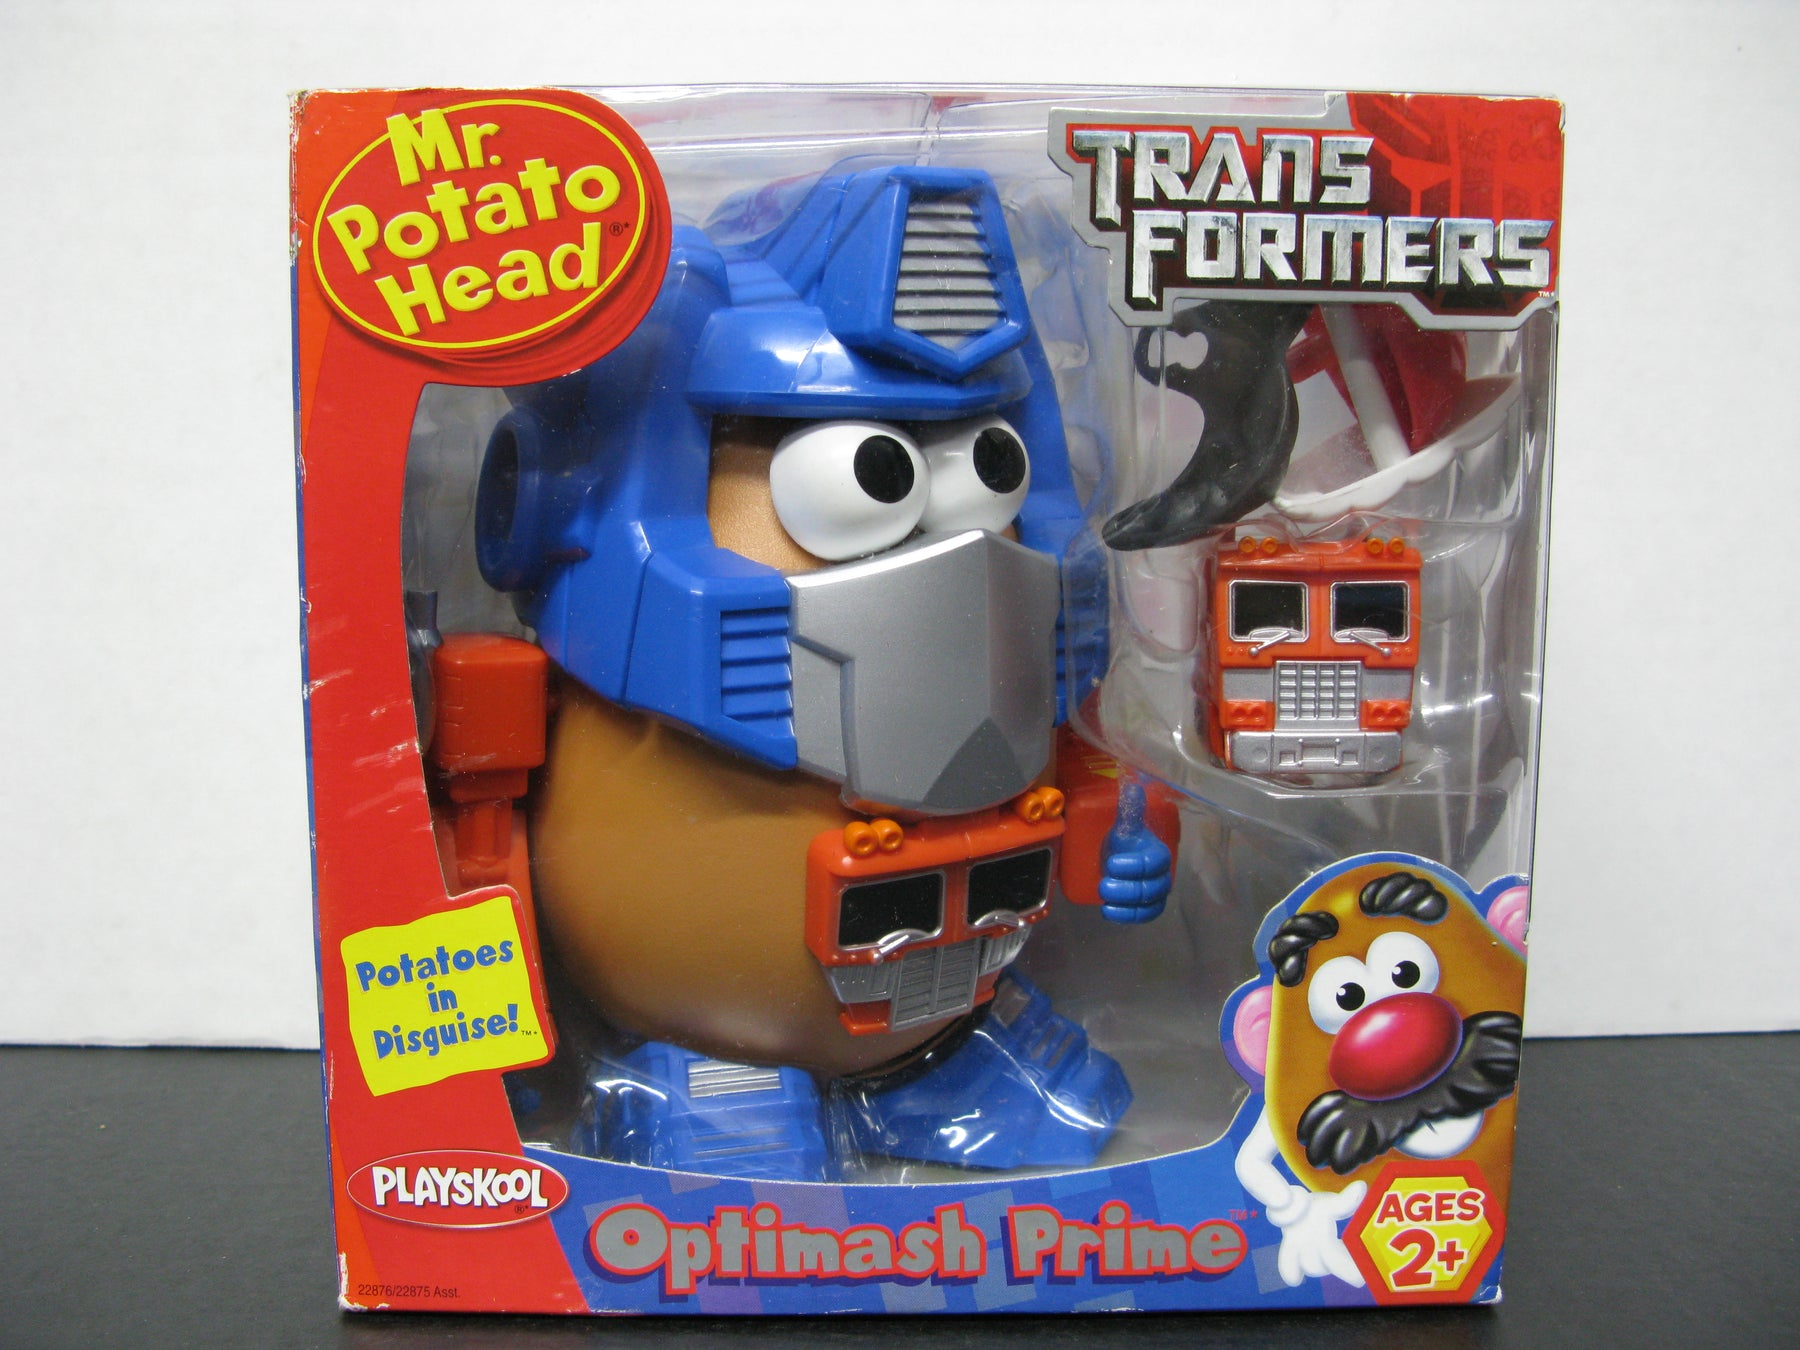 Mr.Potato Head Trans Formers Playskool